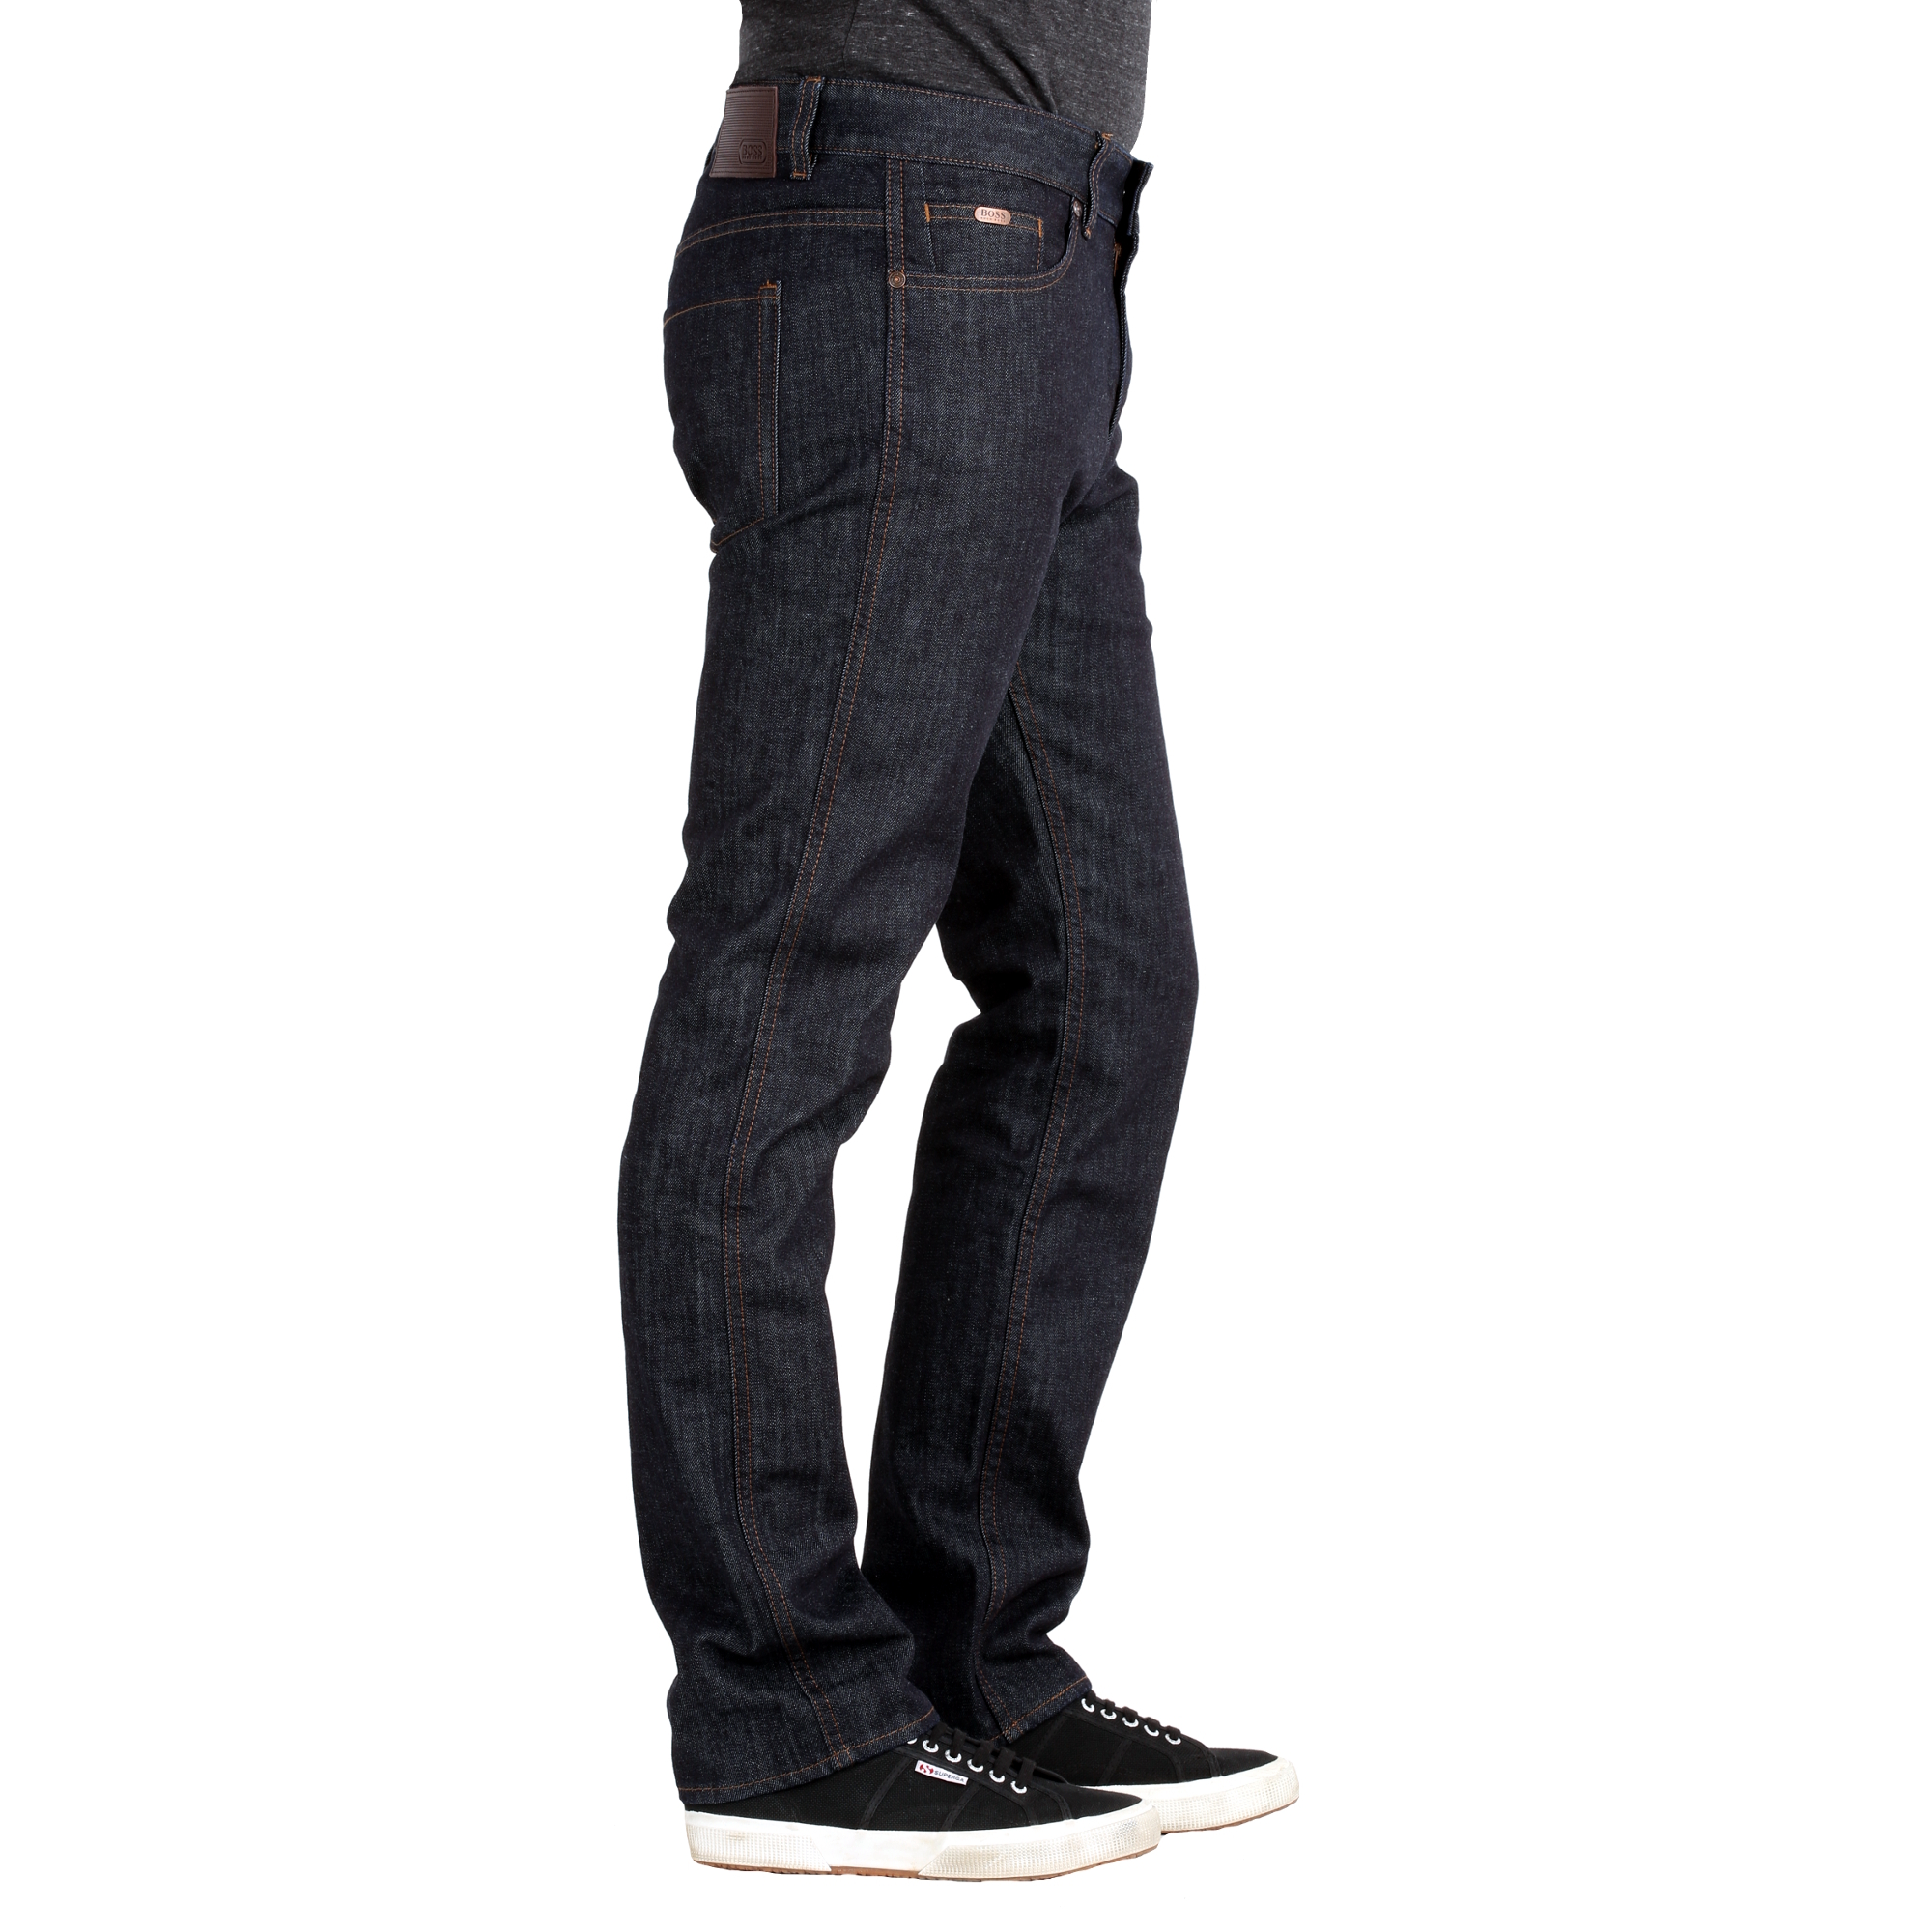 hugo boss herren jeans delaware1 slim fit rinse hugo boss online kaufen. Black Bedroom Furniture Sets. Home Design Ideas